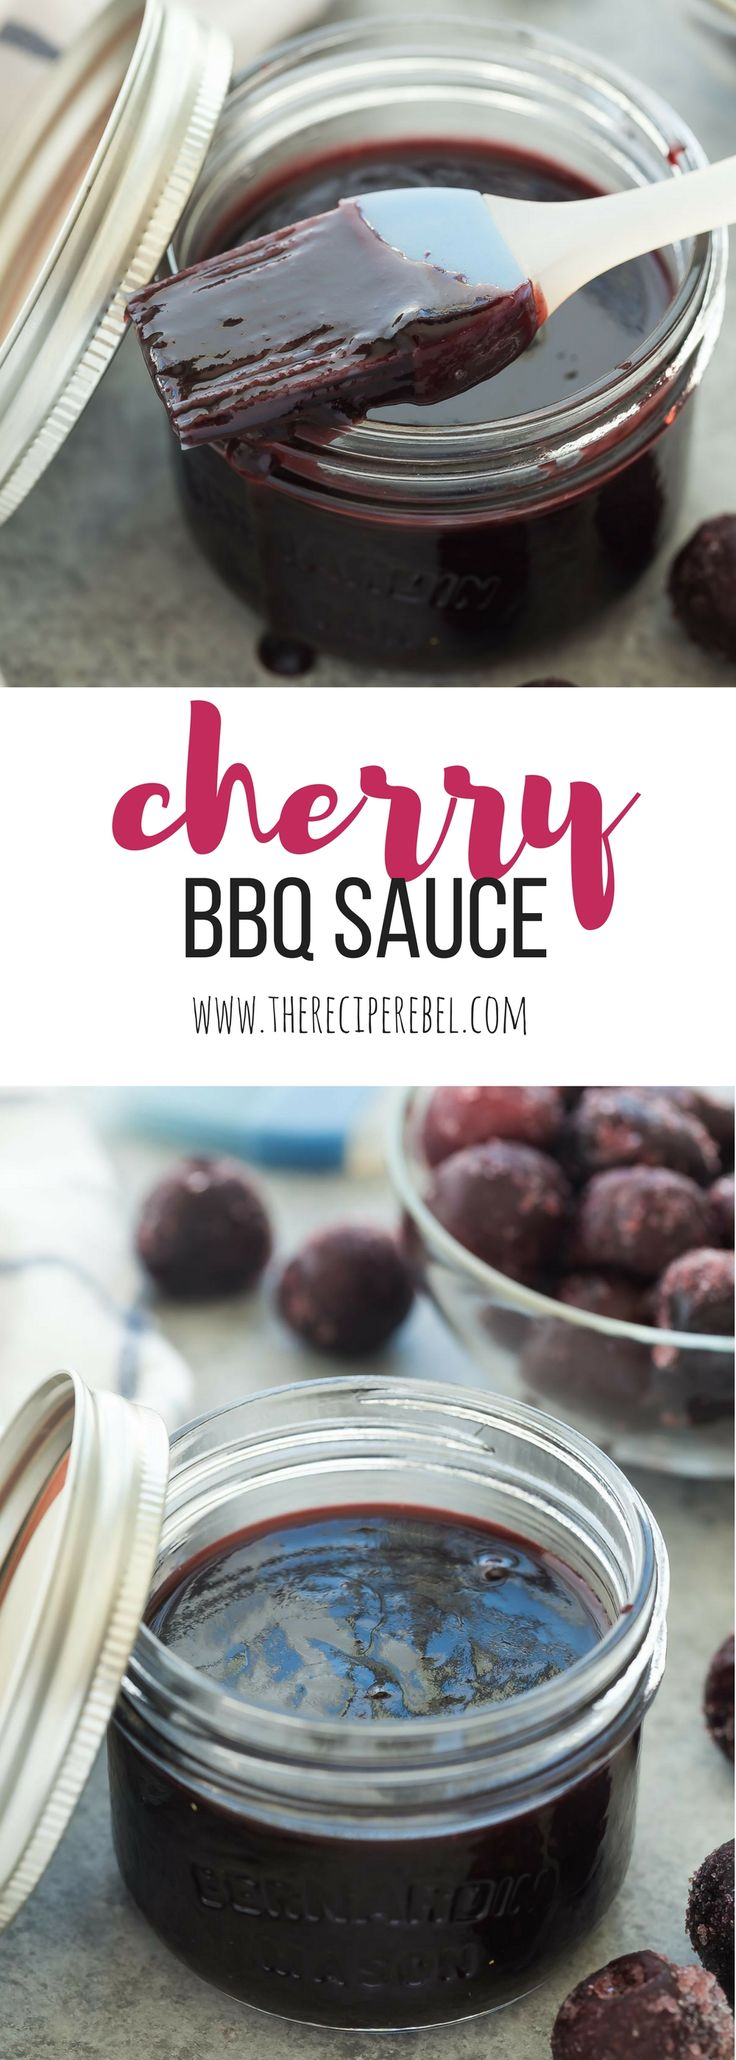 This Easy Homemade Cherry BBQ Sauce is made with fresh or frozen cherries and goes perfectly with chicken or pork. Make a big batch and keep it in the fridge or freezer all summer long! Includes how to recipe video   barbecue sauce   homemade sauce   grilling   grilled